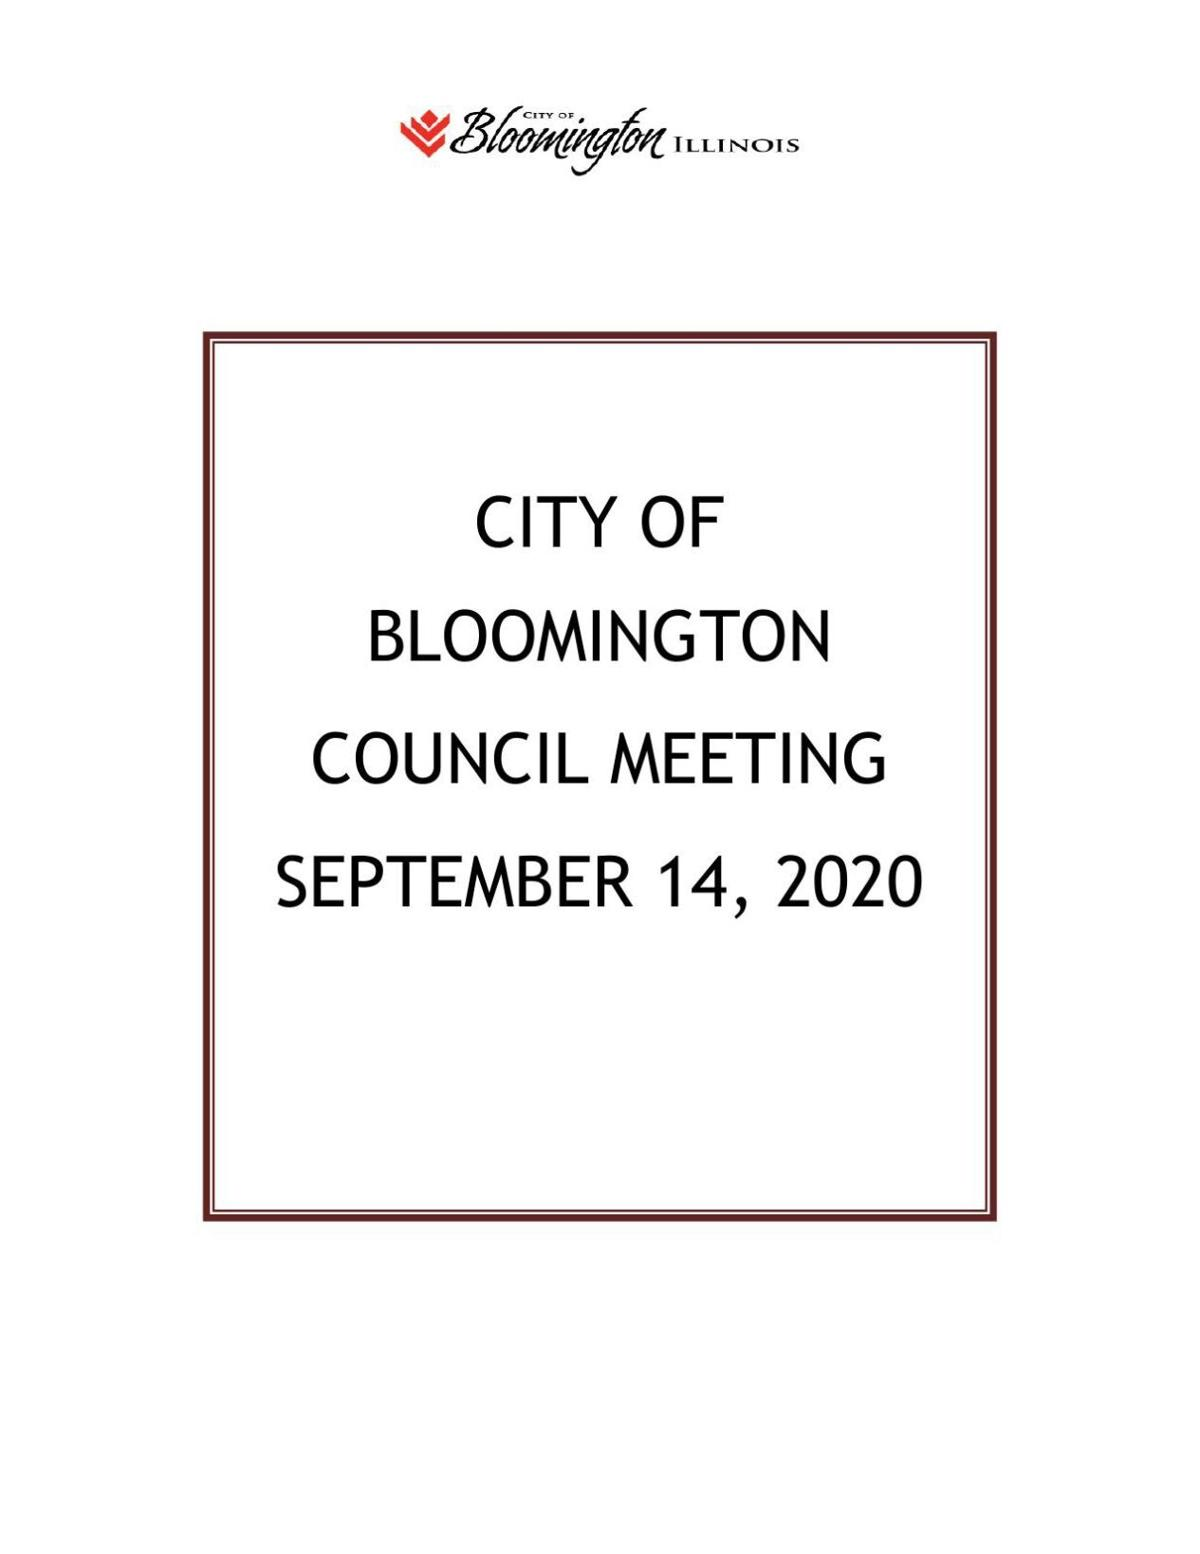 Bloomington council agenda